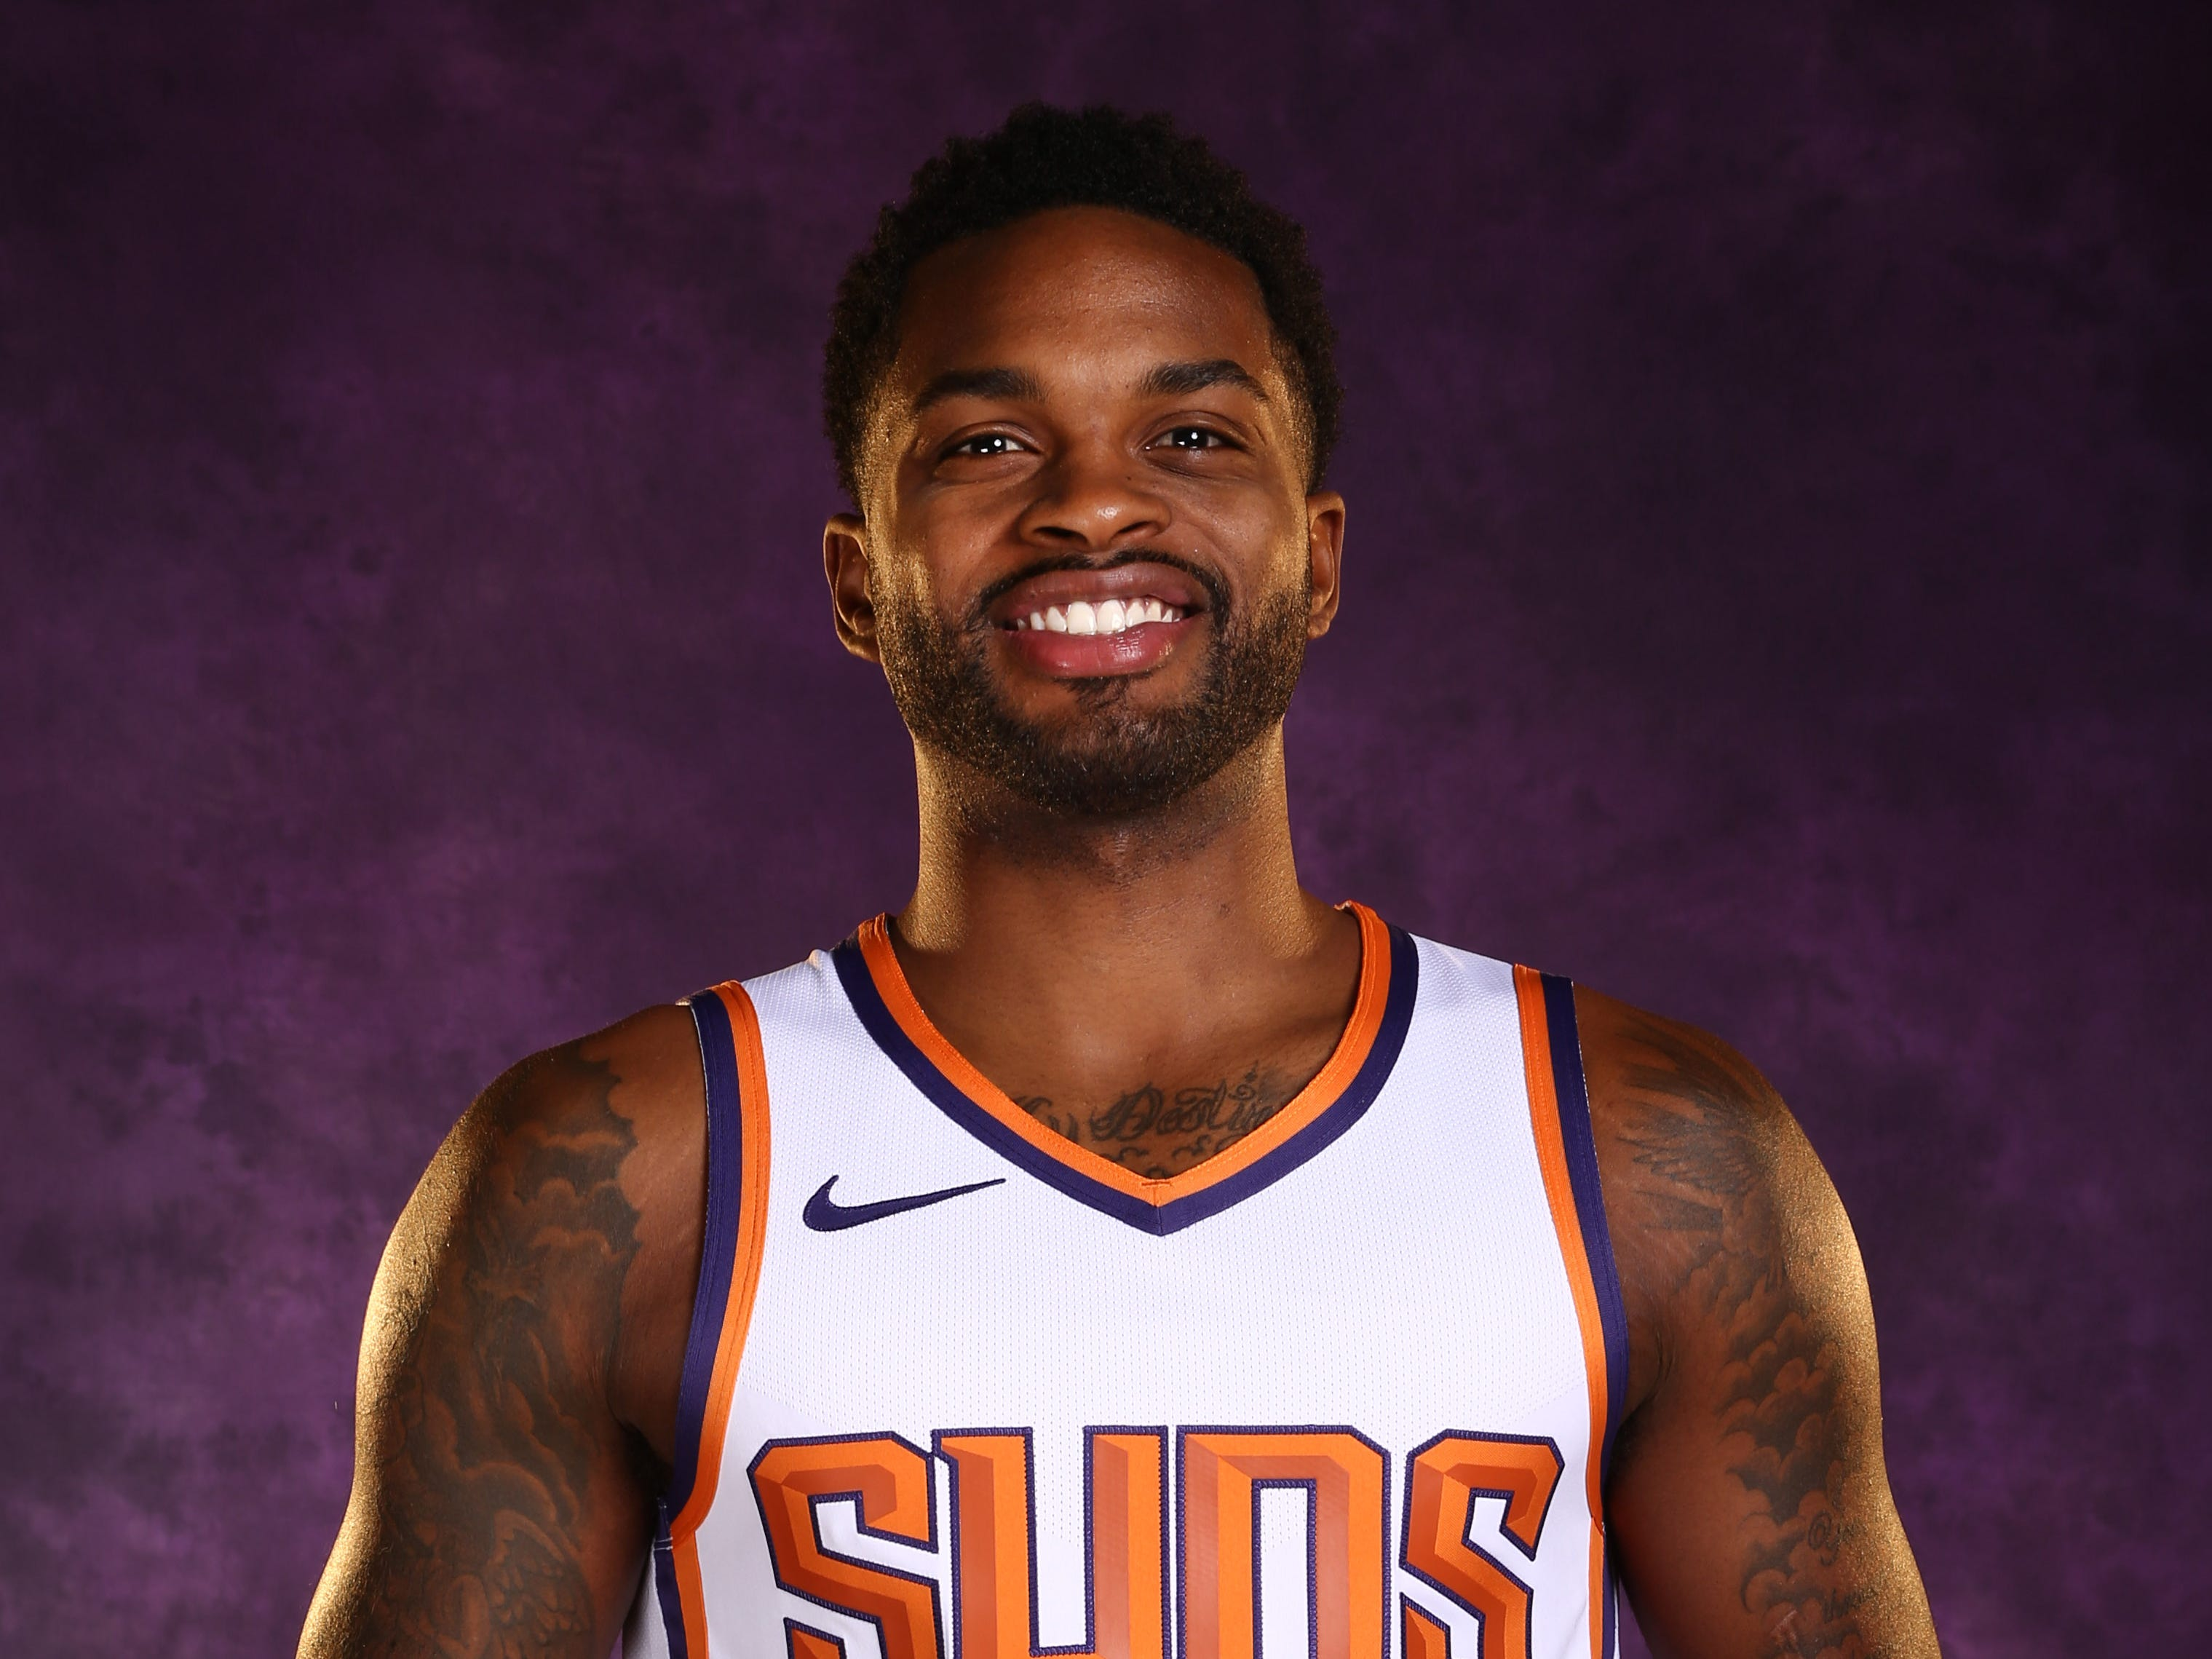 Phoenix Suns guard Troy Daniels during media day at Talking Stick Resort Arena on Sep. 24, 2018, in Phoenix, Ariz.